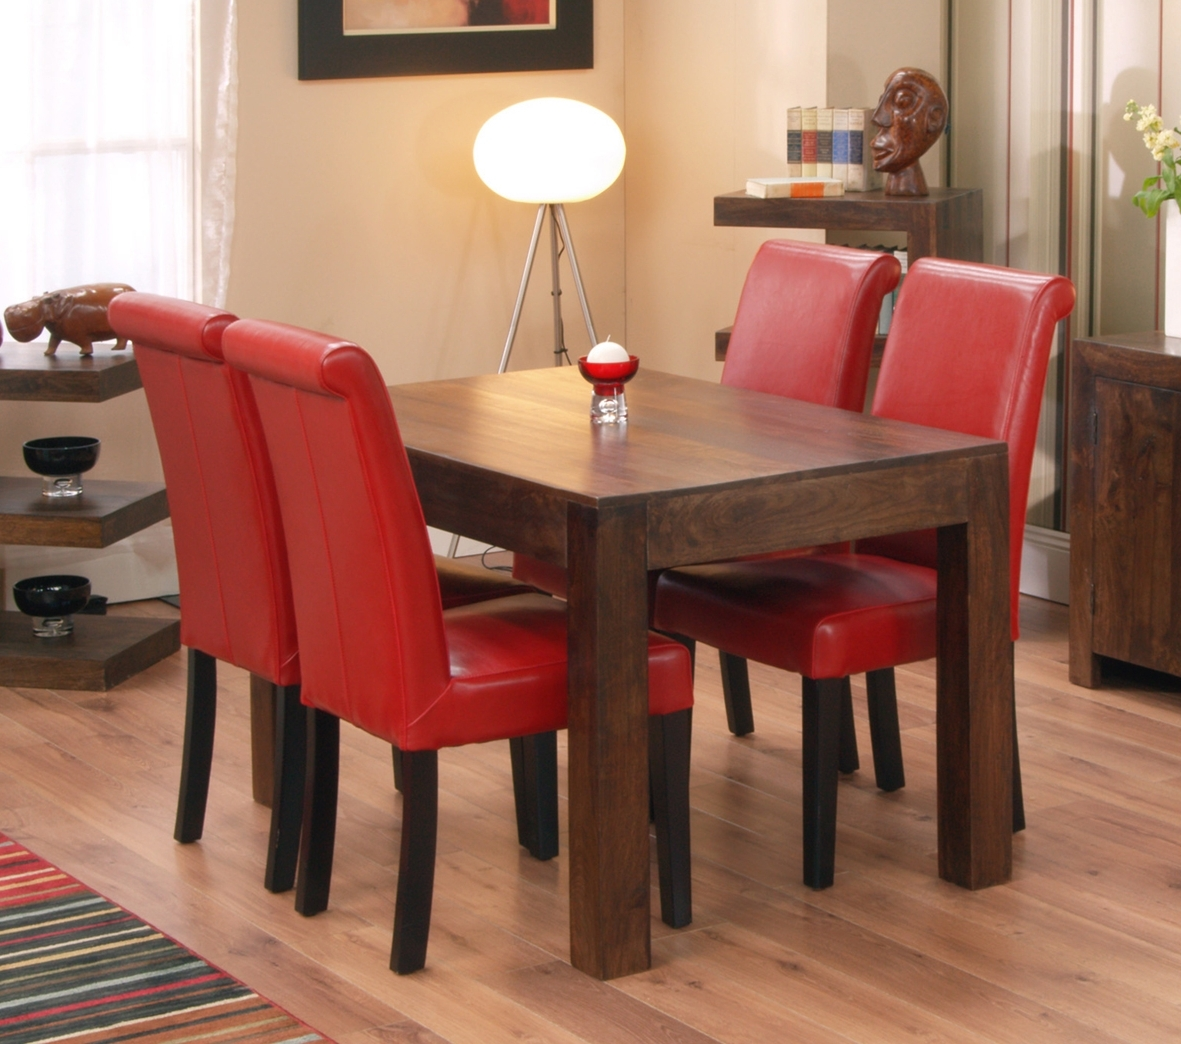 Favorite Small Dining Tables And Chairs Intended For Dining Tables: Glamorous Small Dining Table Sets Small Dining Sets (View 19 of 25)